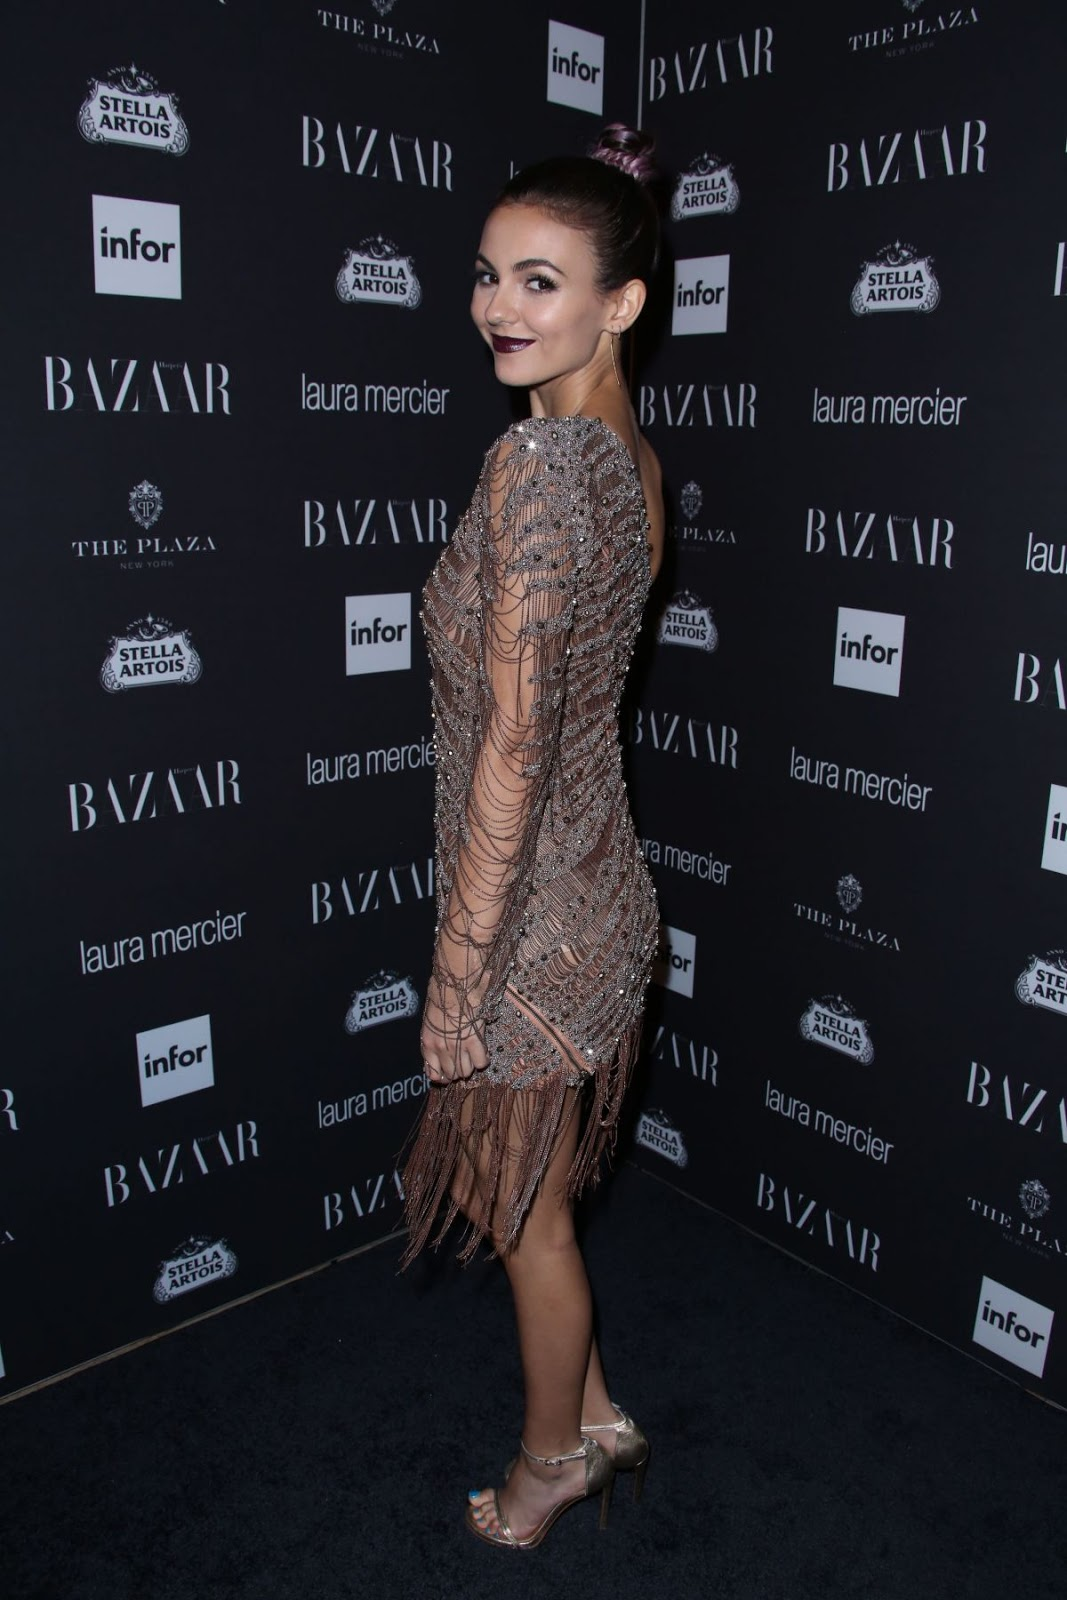 Full HQ Wallappers of Victoria Justice At Harper's Bazaar Celebrates Icons By Carine Roitfeld In New York